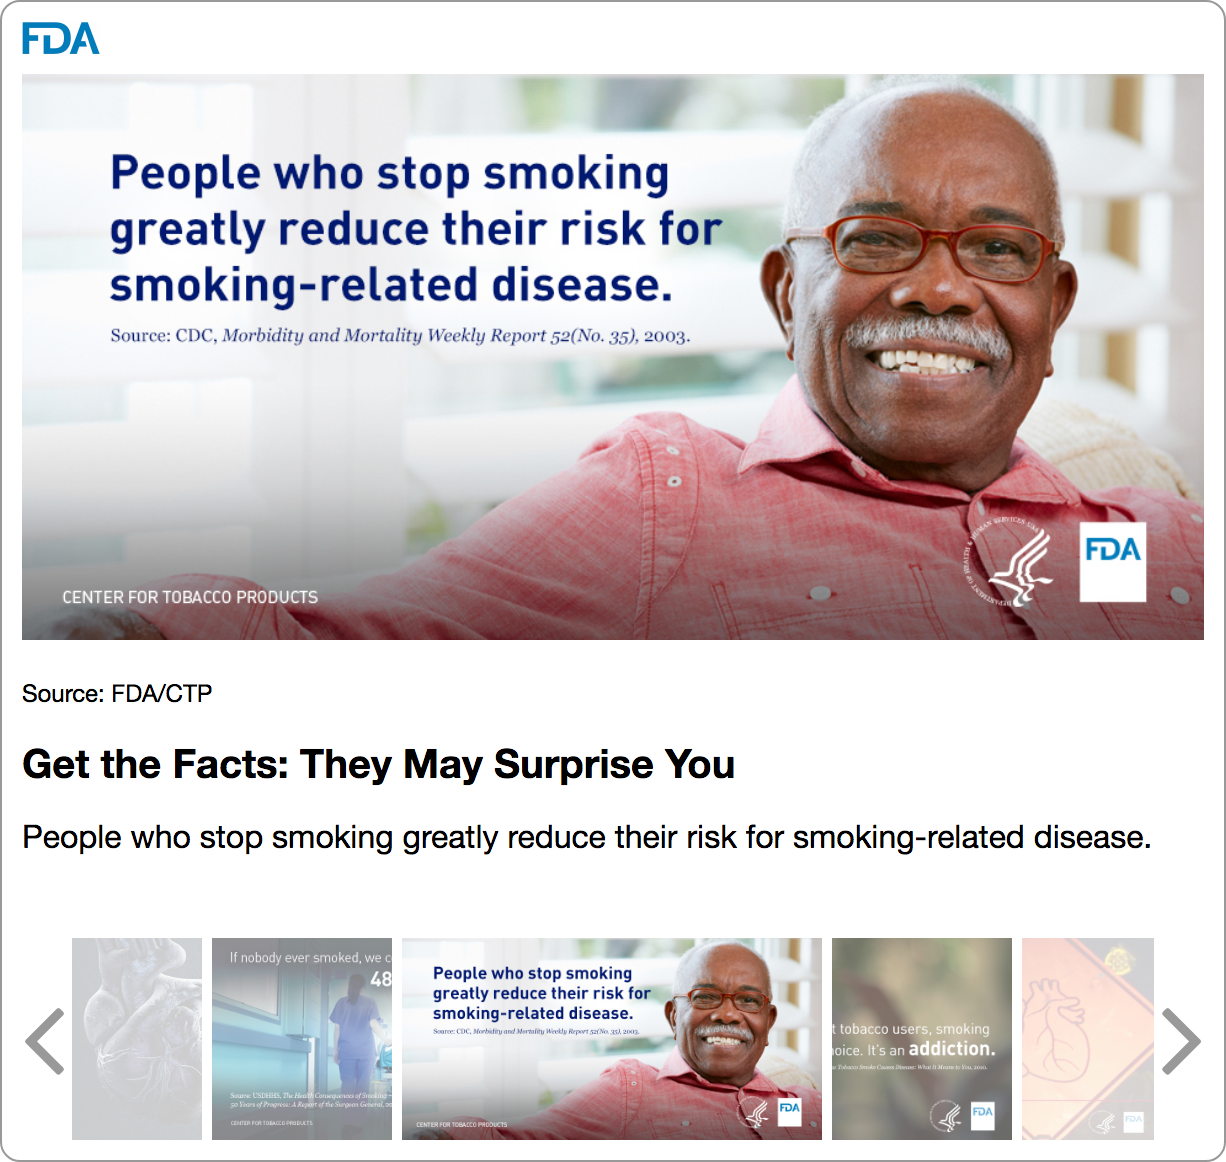 This widget contains five gallery images about the health effects of tobacco use.